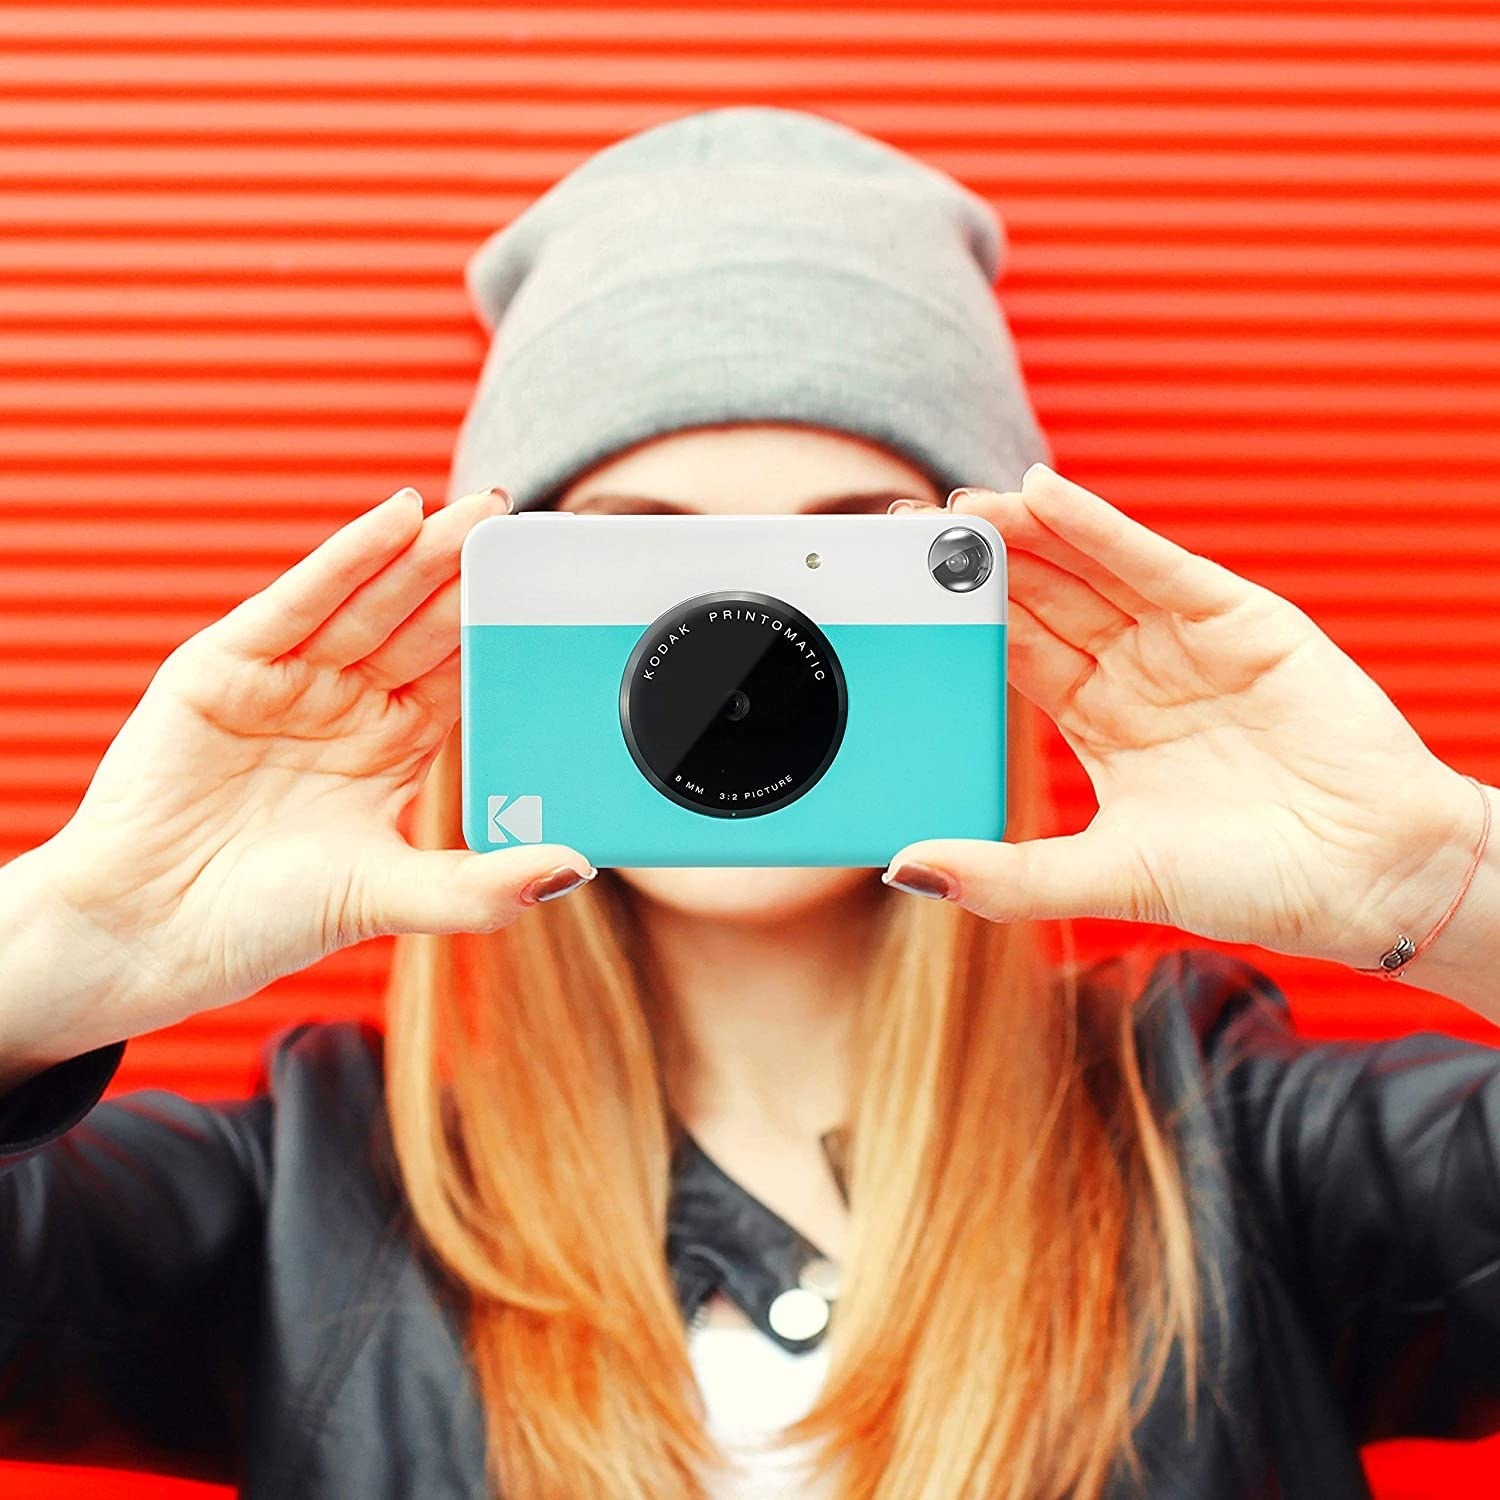 A person holding the print camera.